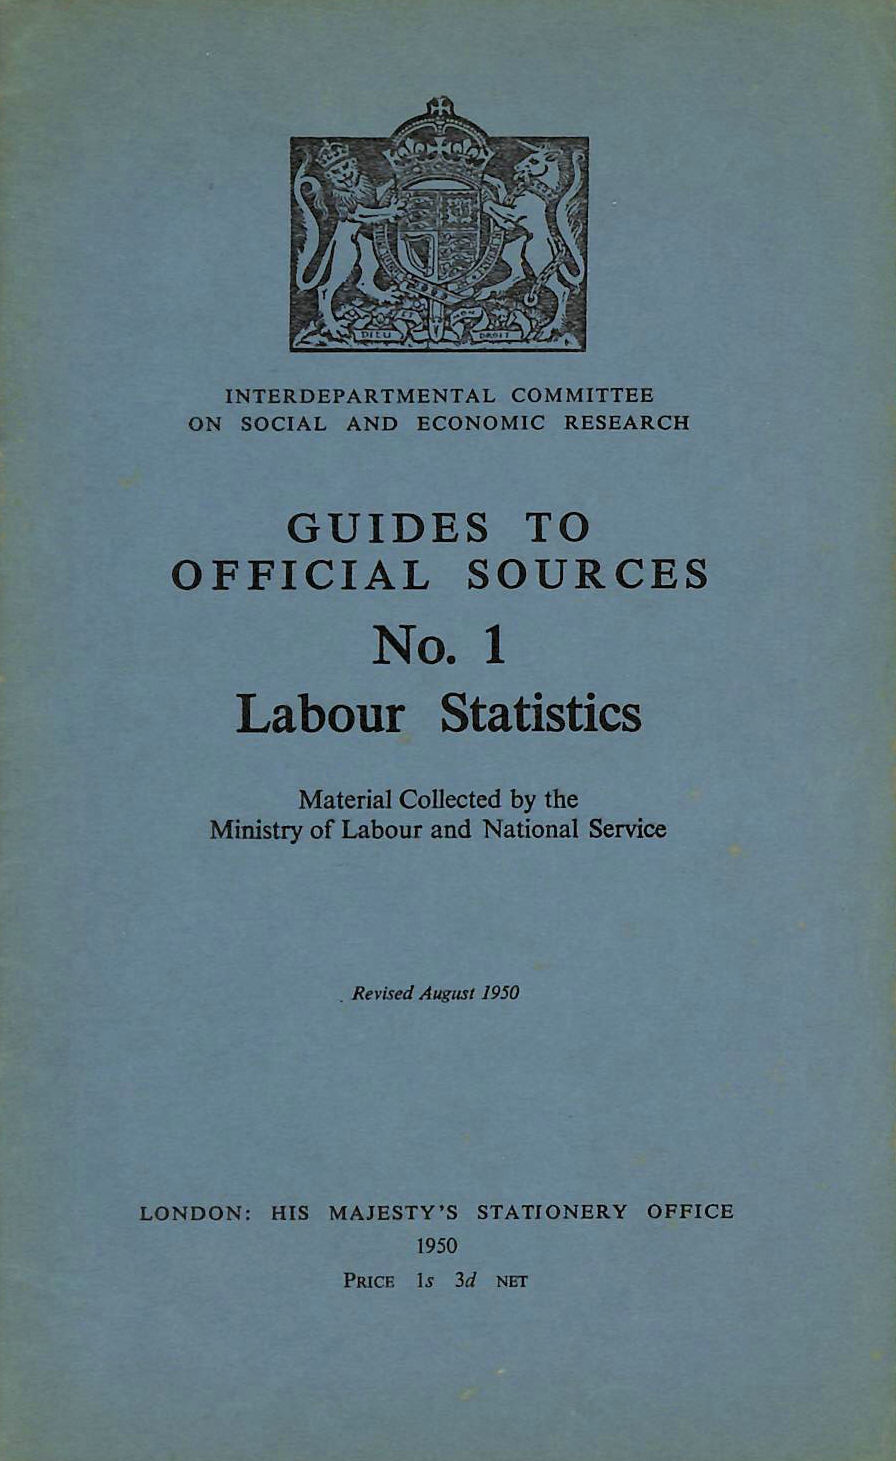 Image for Guide to Official Sources No.1 Labour Statistics.